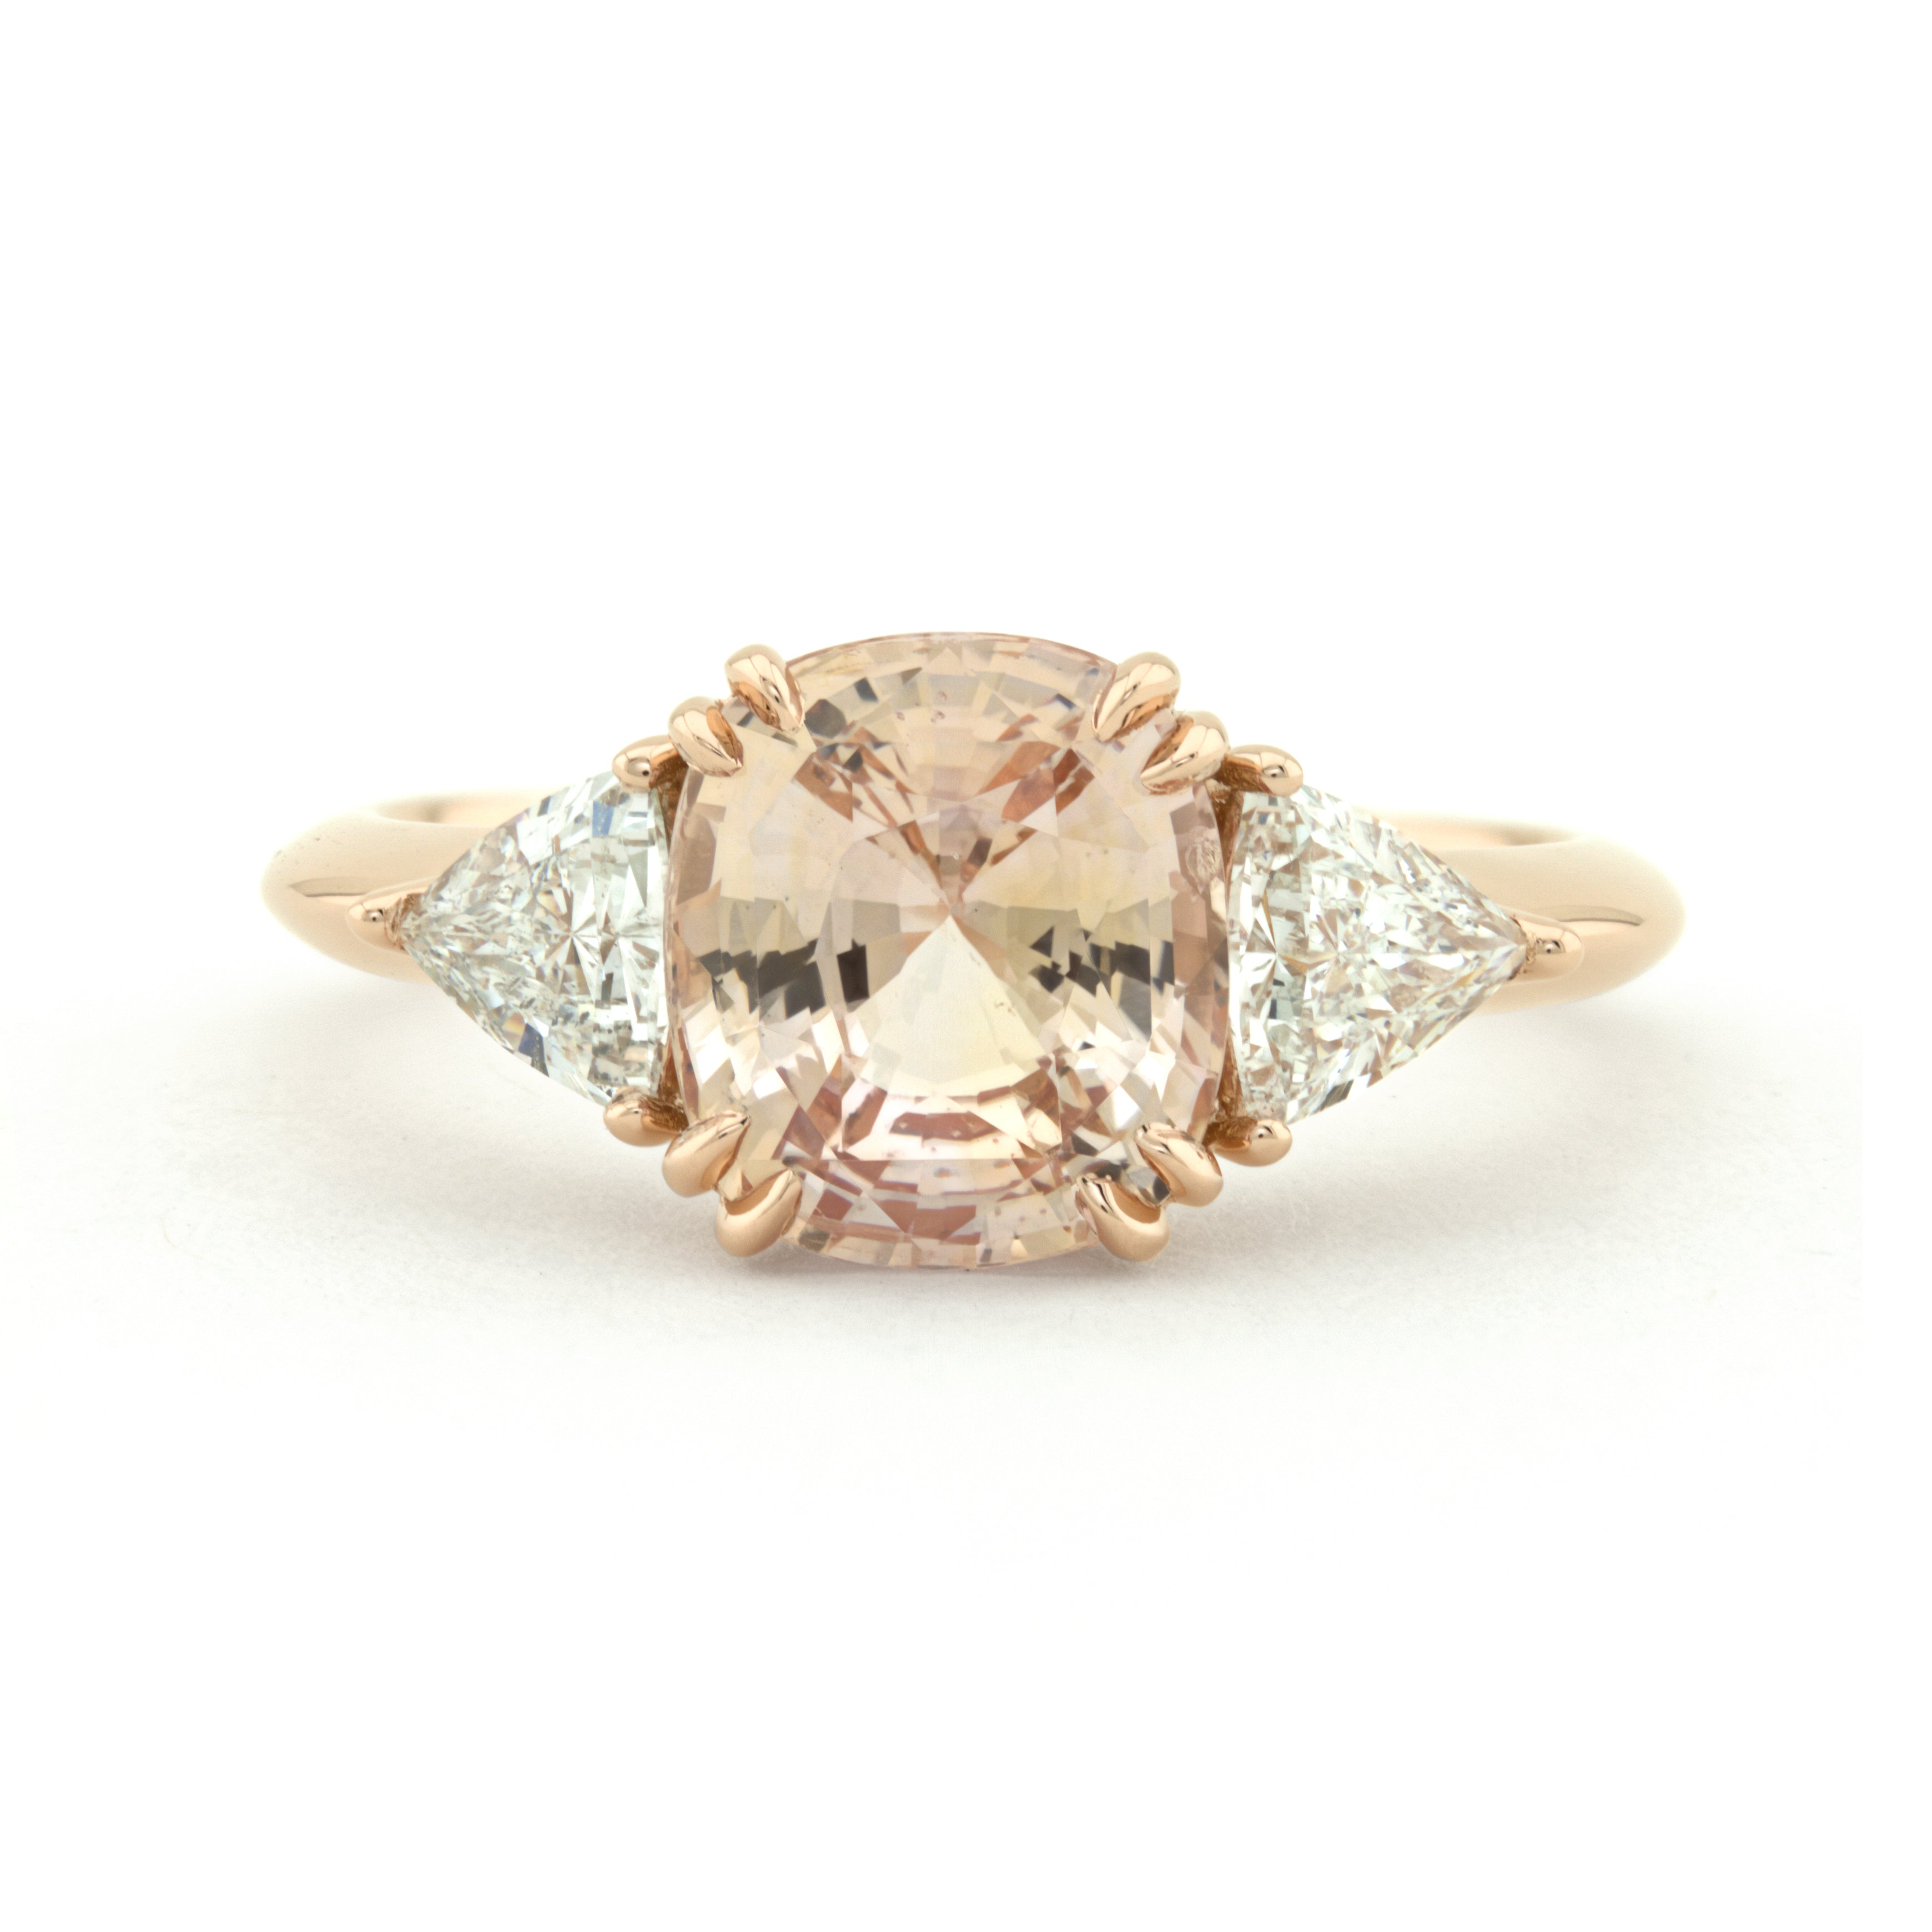 engagement gold sapphire rose peach fullxfull eidelprecious listing ring diamond champagne by il